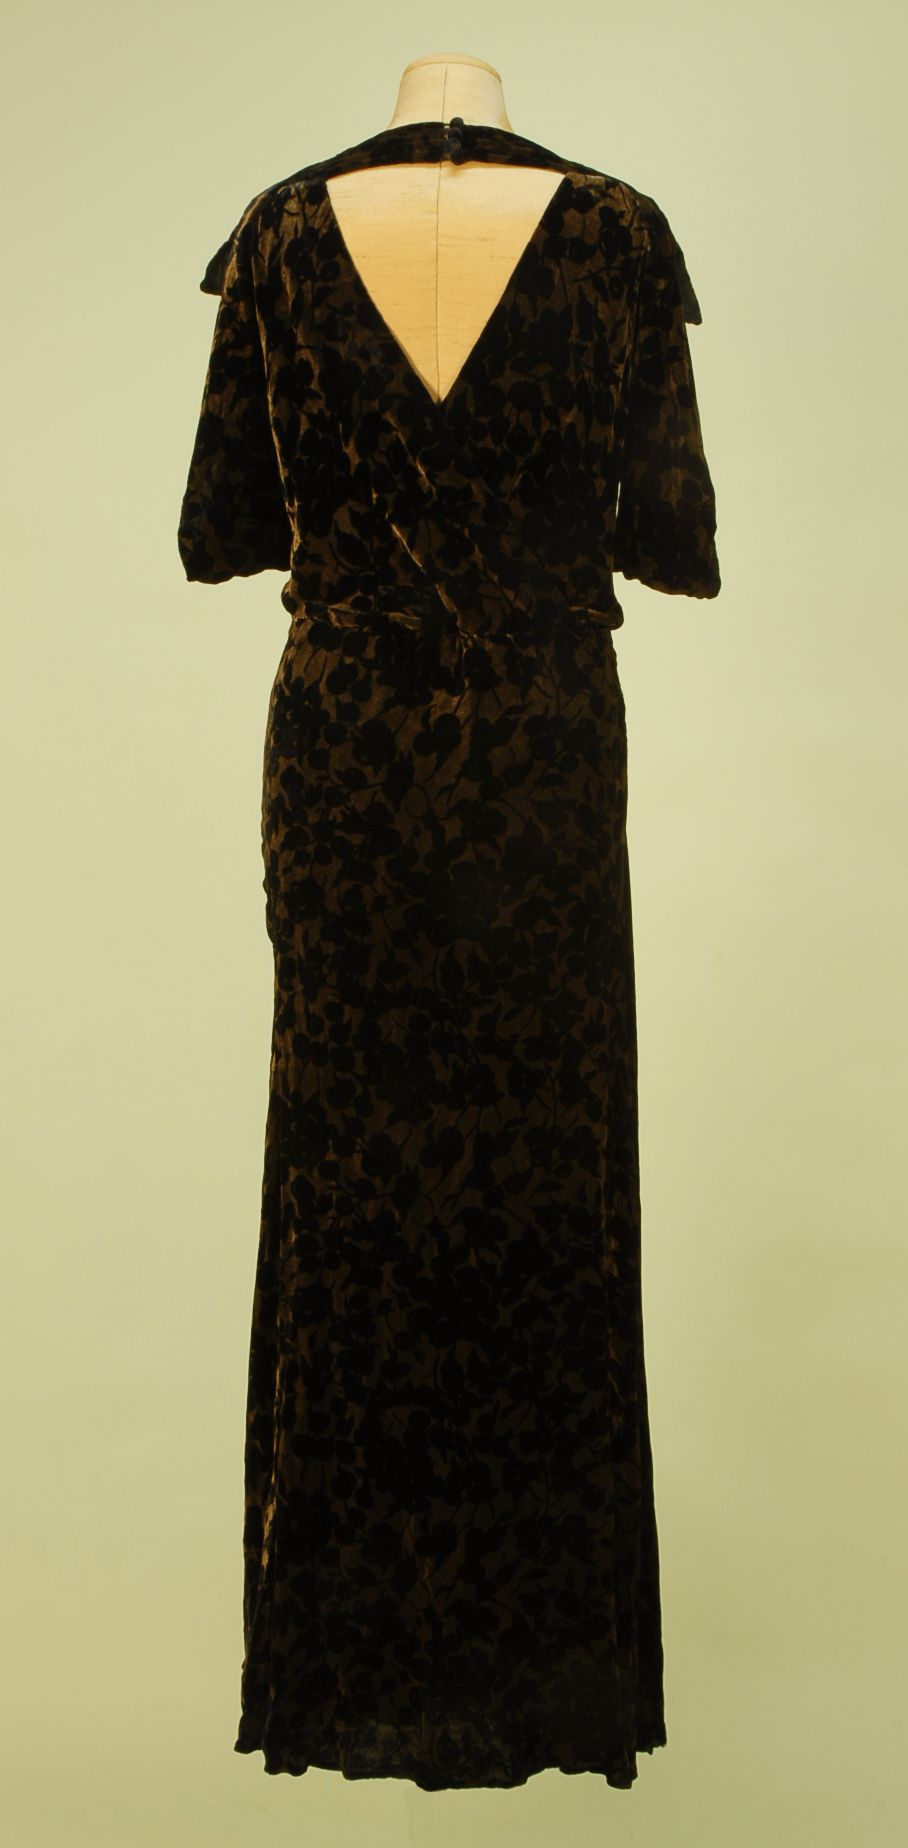 Back View VOIDED VELVET and GOLD BIAS CUT EVENING GOWN, c. 1930. Black velvet in an overall pattern of cherries on a metallic gold ground with draped cutout V-back with four self button and loop closures at top, slight cowl front, pointed cap sleeve and unusual looped arm treatment.